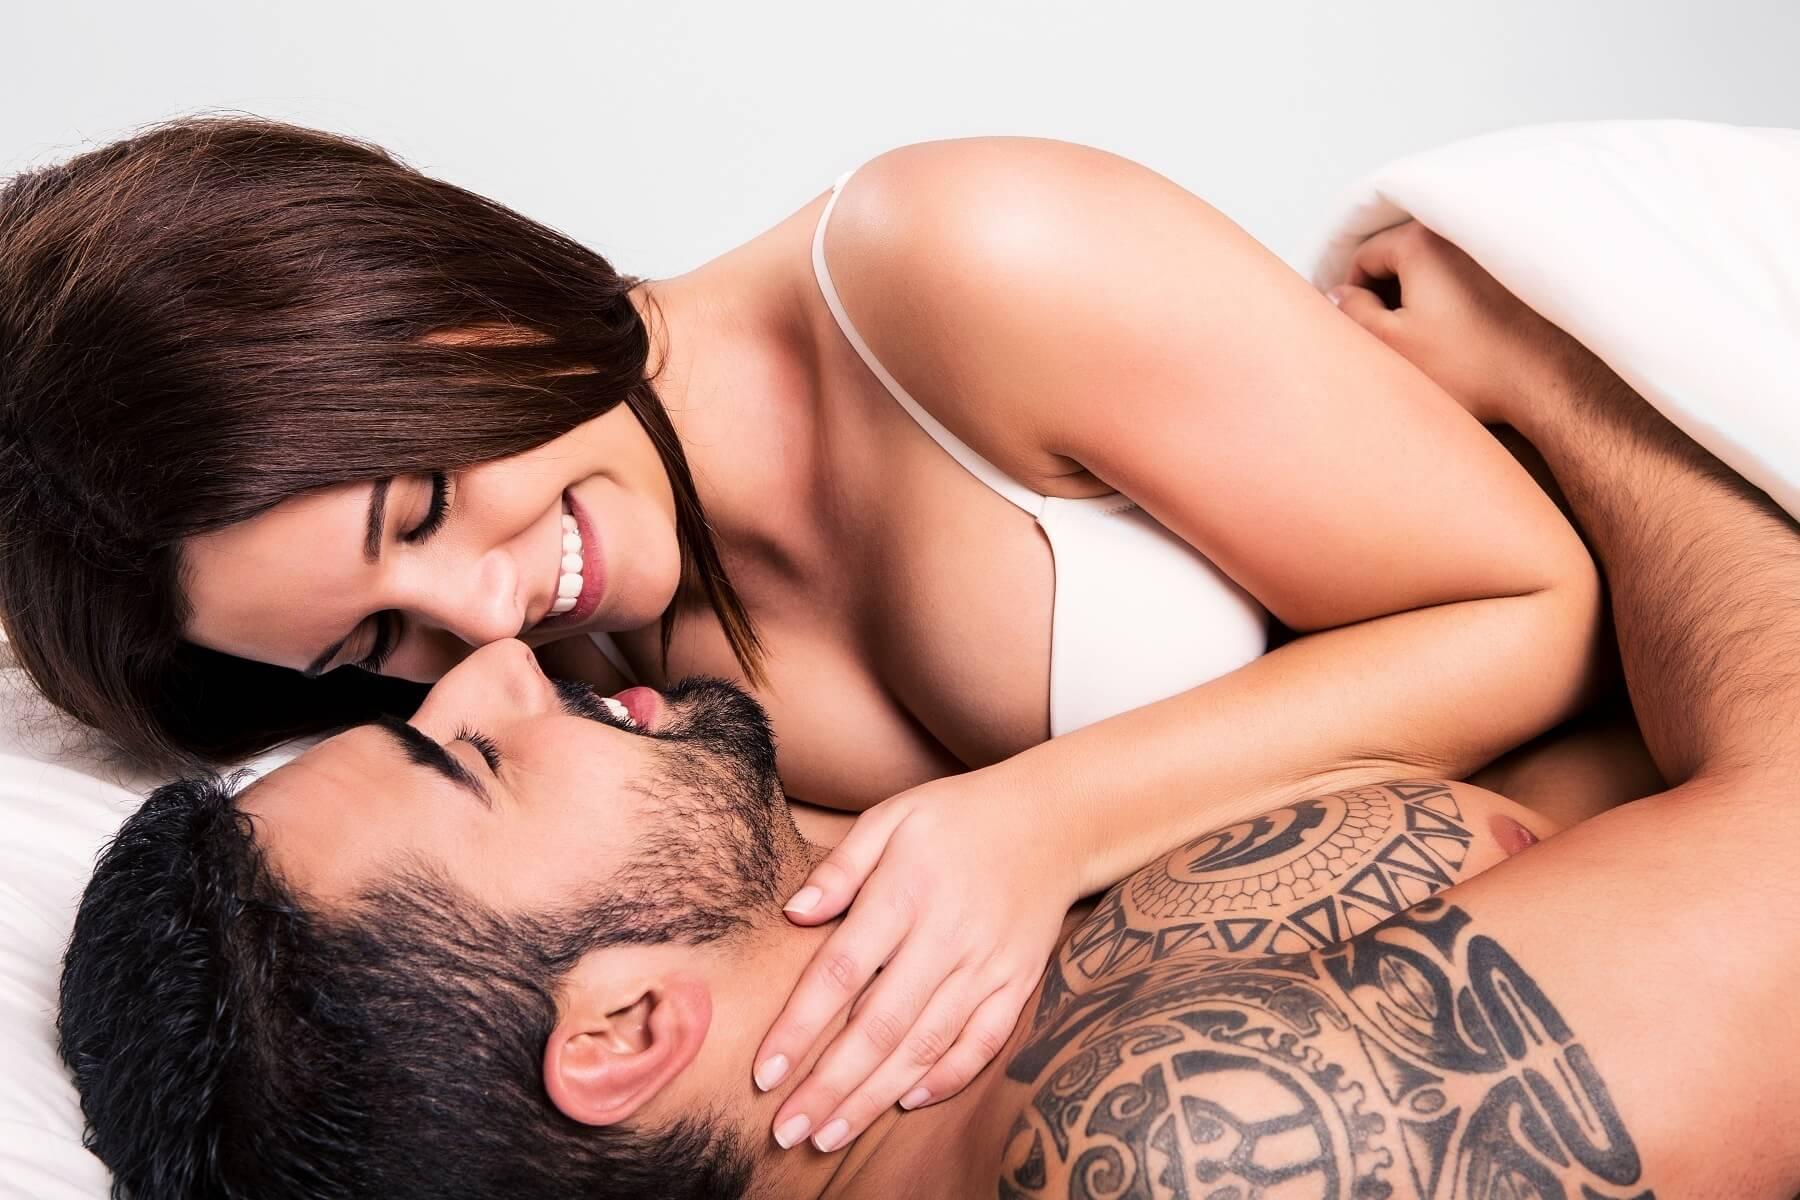 Hot romantic sex photo ever with her love with song